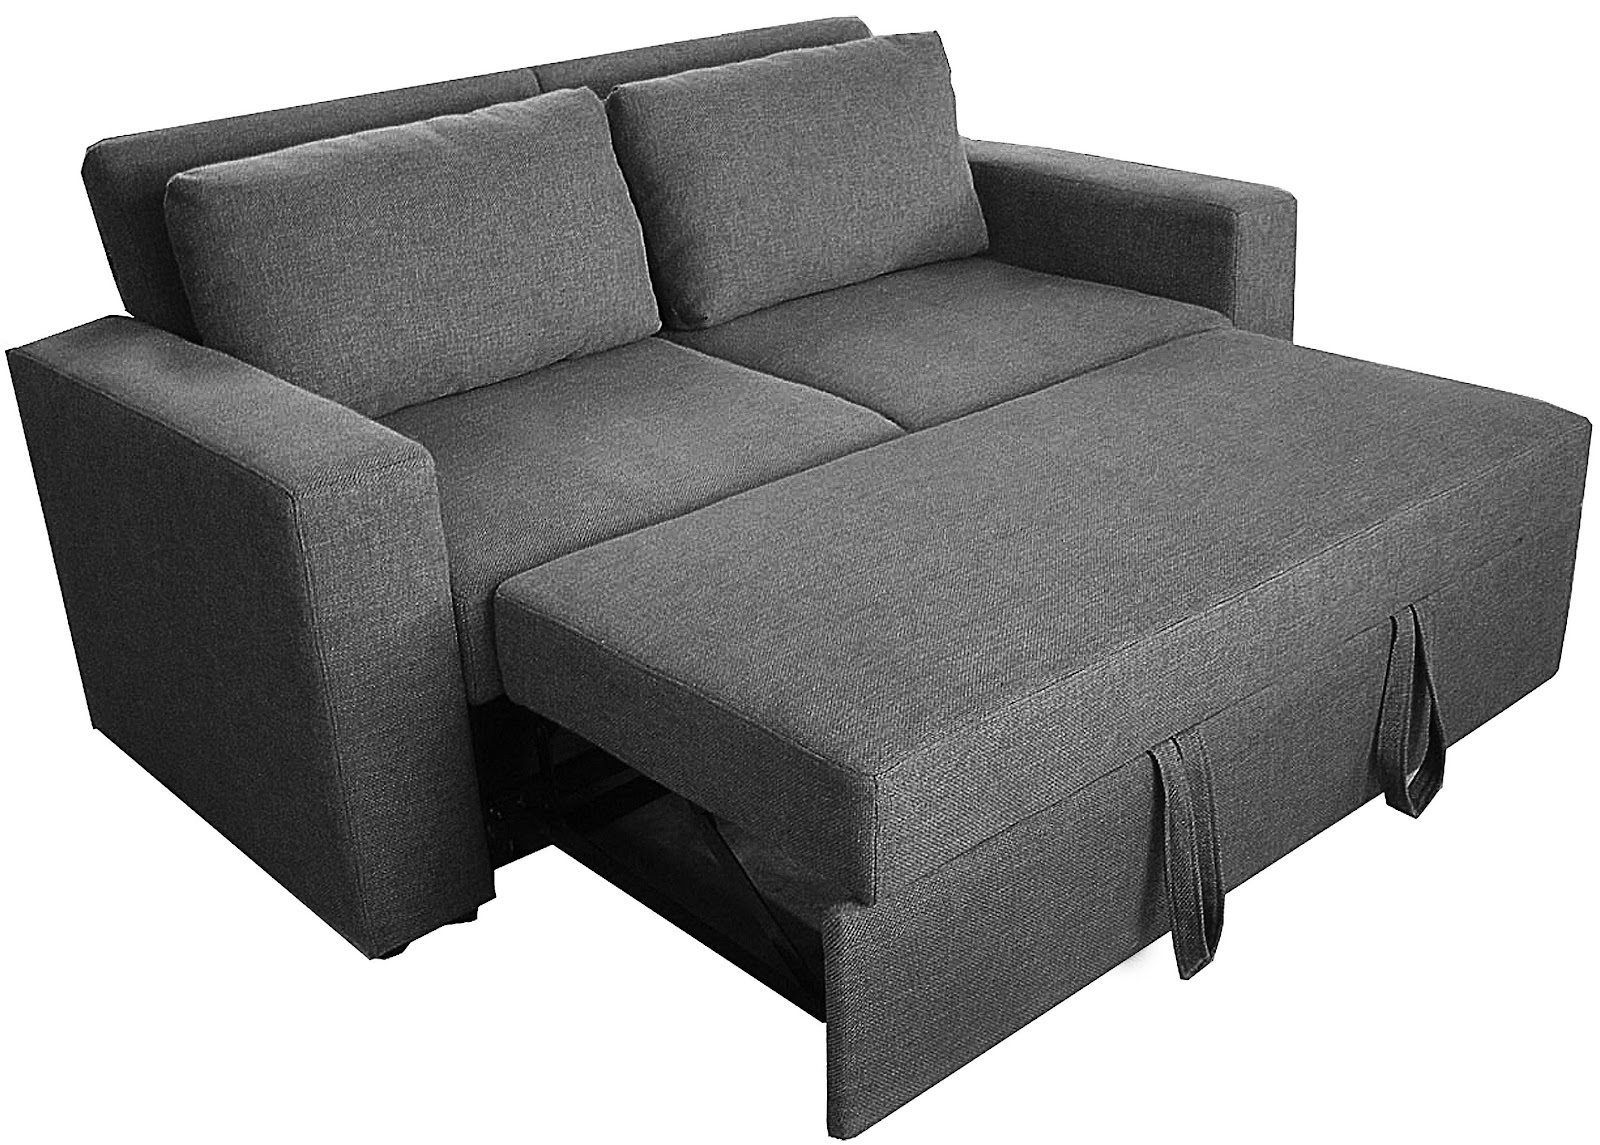 Sectional Sofa With Pull Out Bed Has One Of The Best Kind Of Other